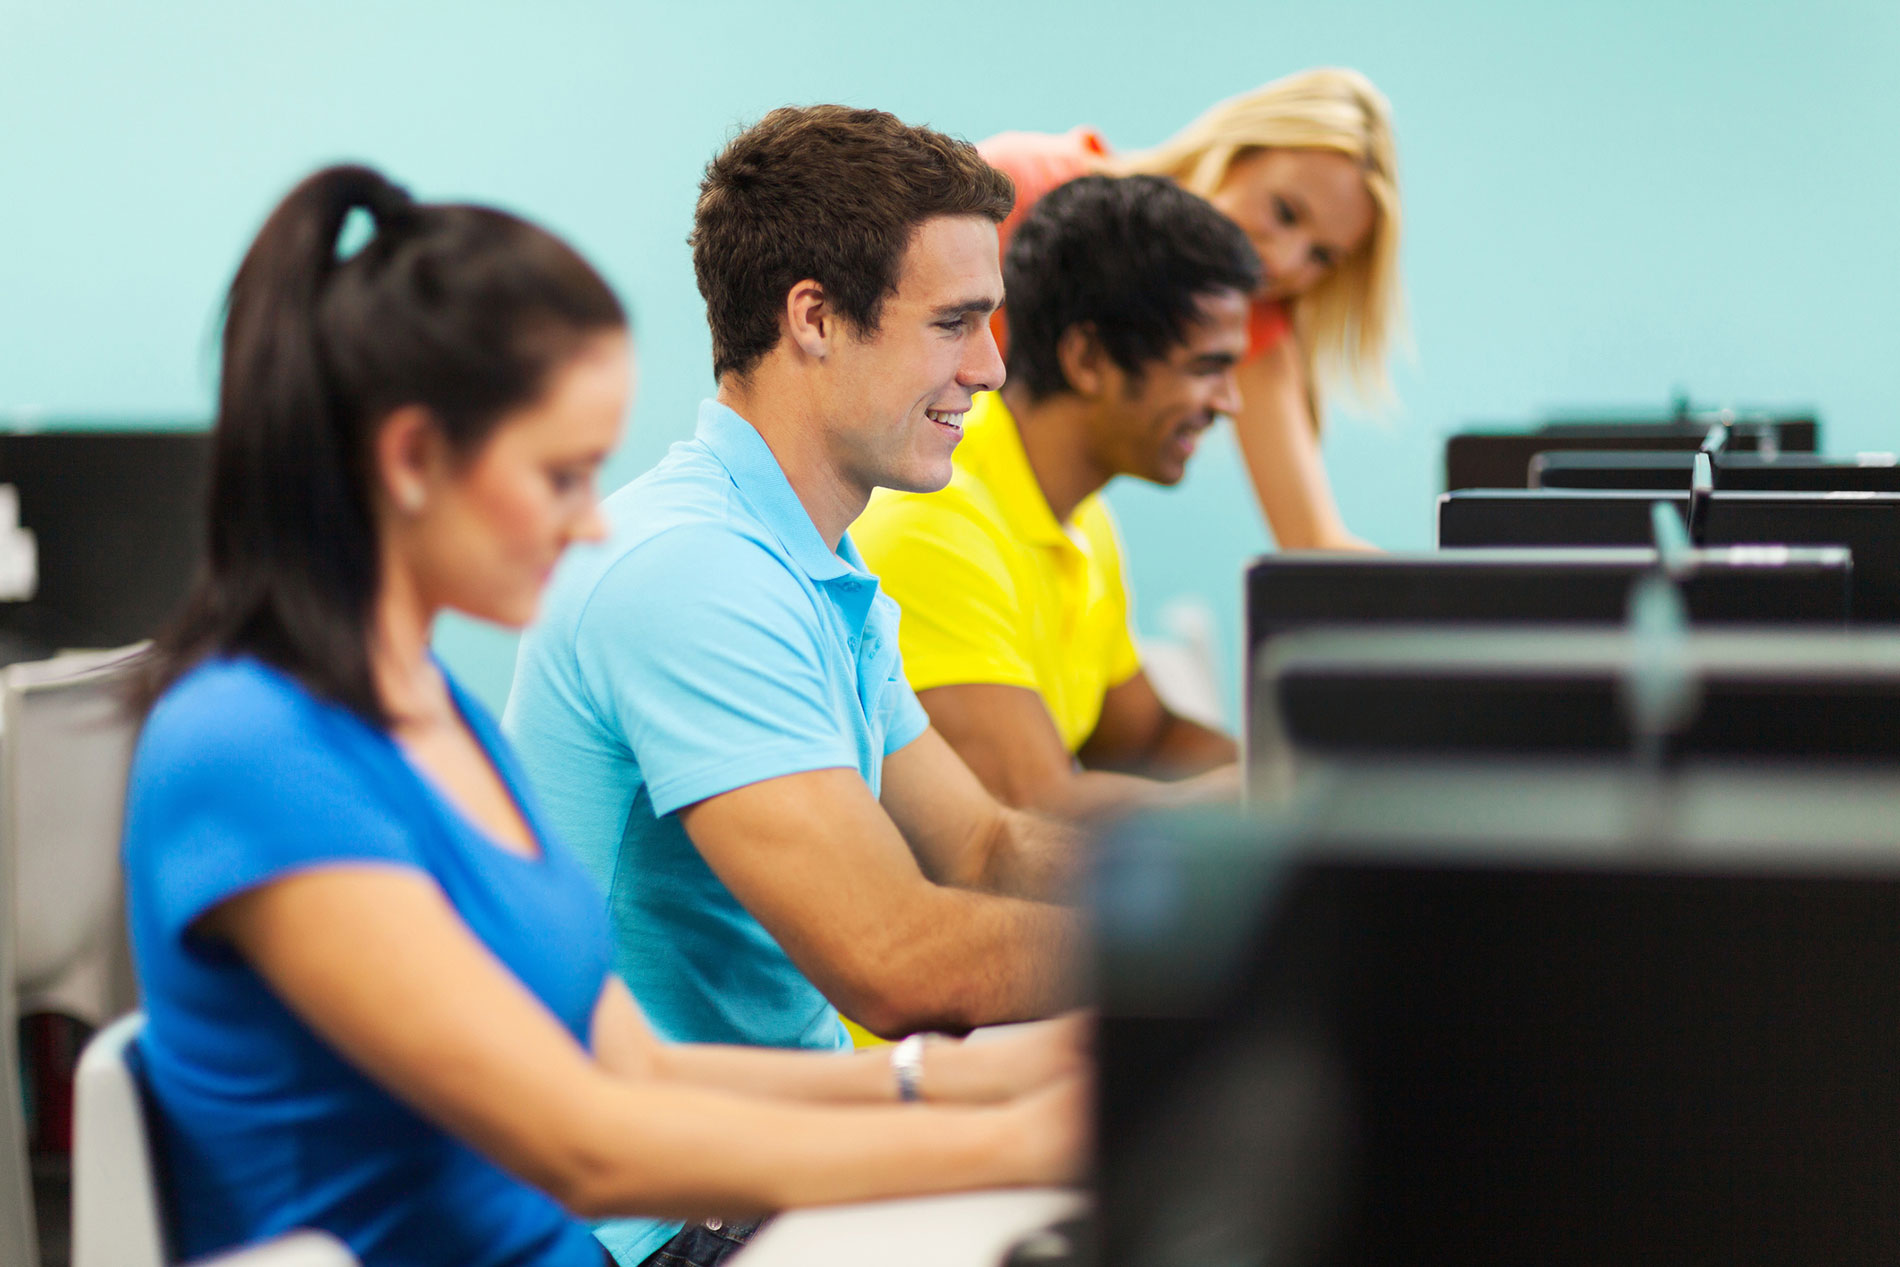 Students Training in a Row of Computers